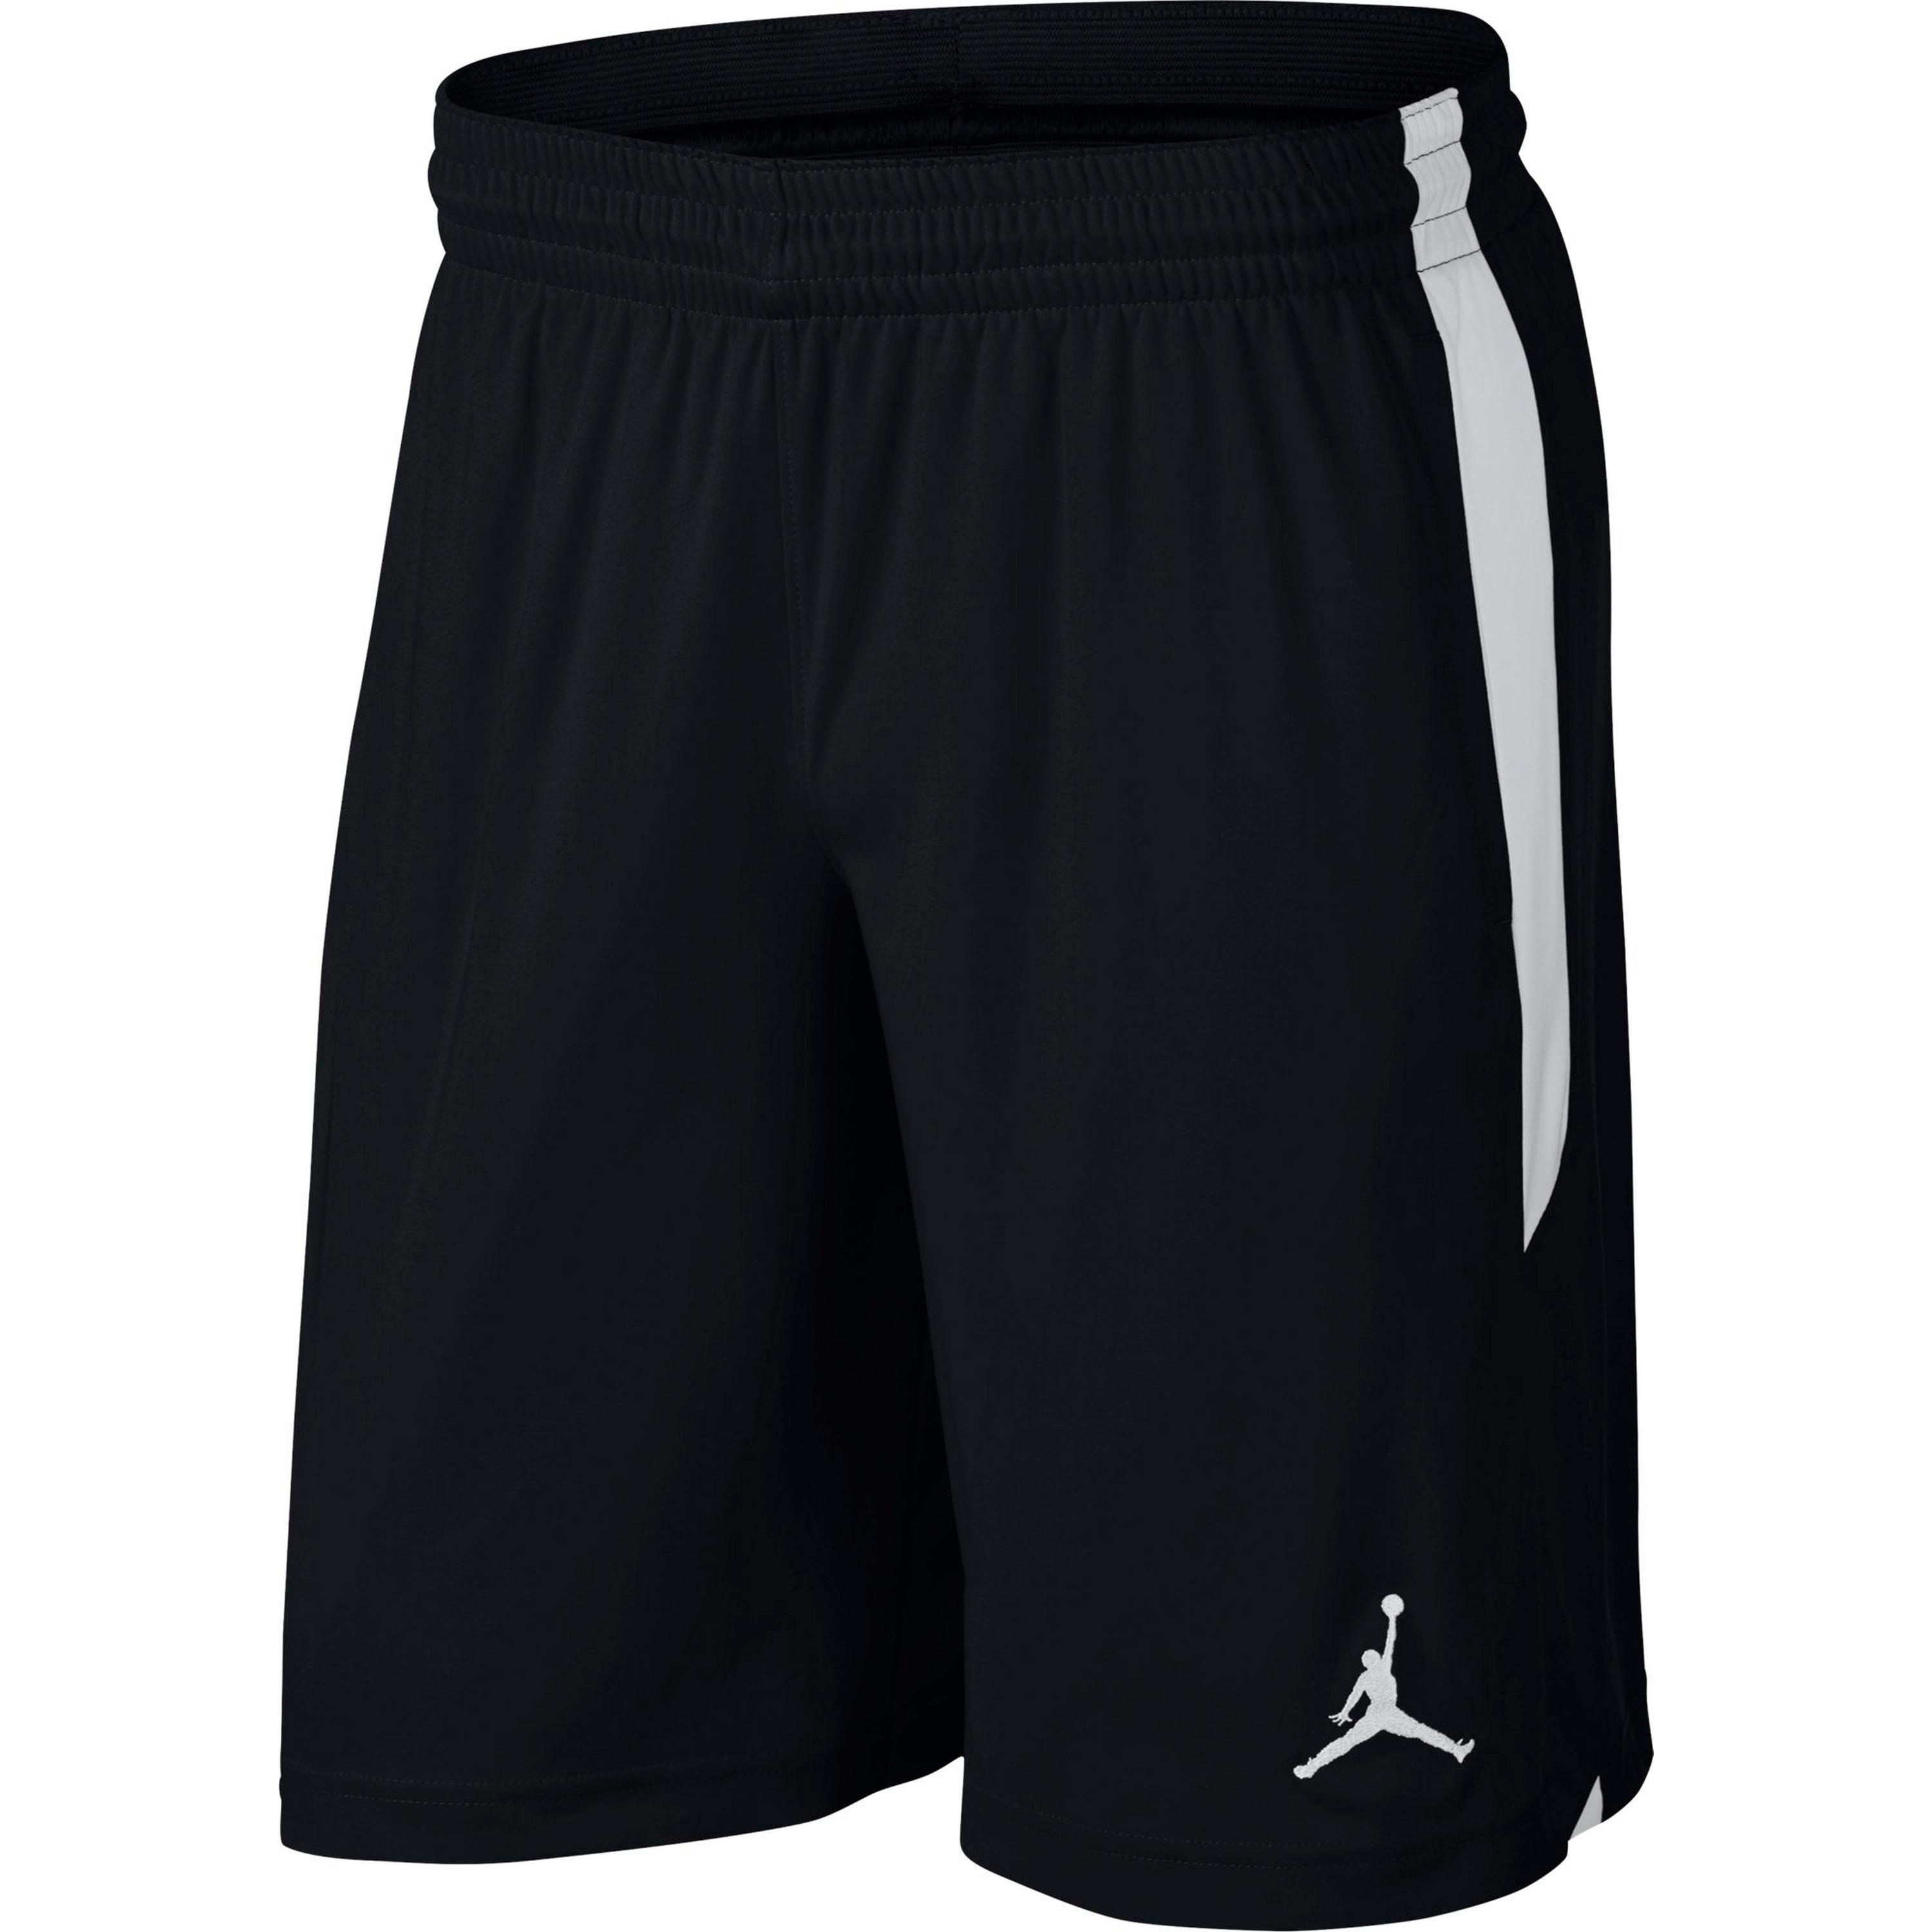 Image of Nike 23 ALPHA DRY KNIT Basketball-Shorts Herren